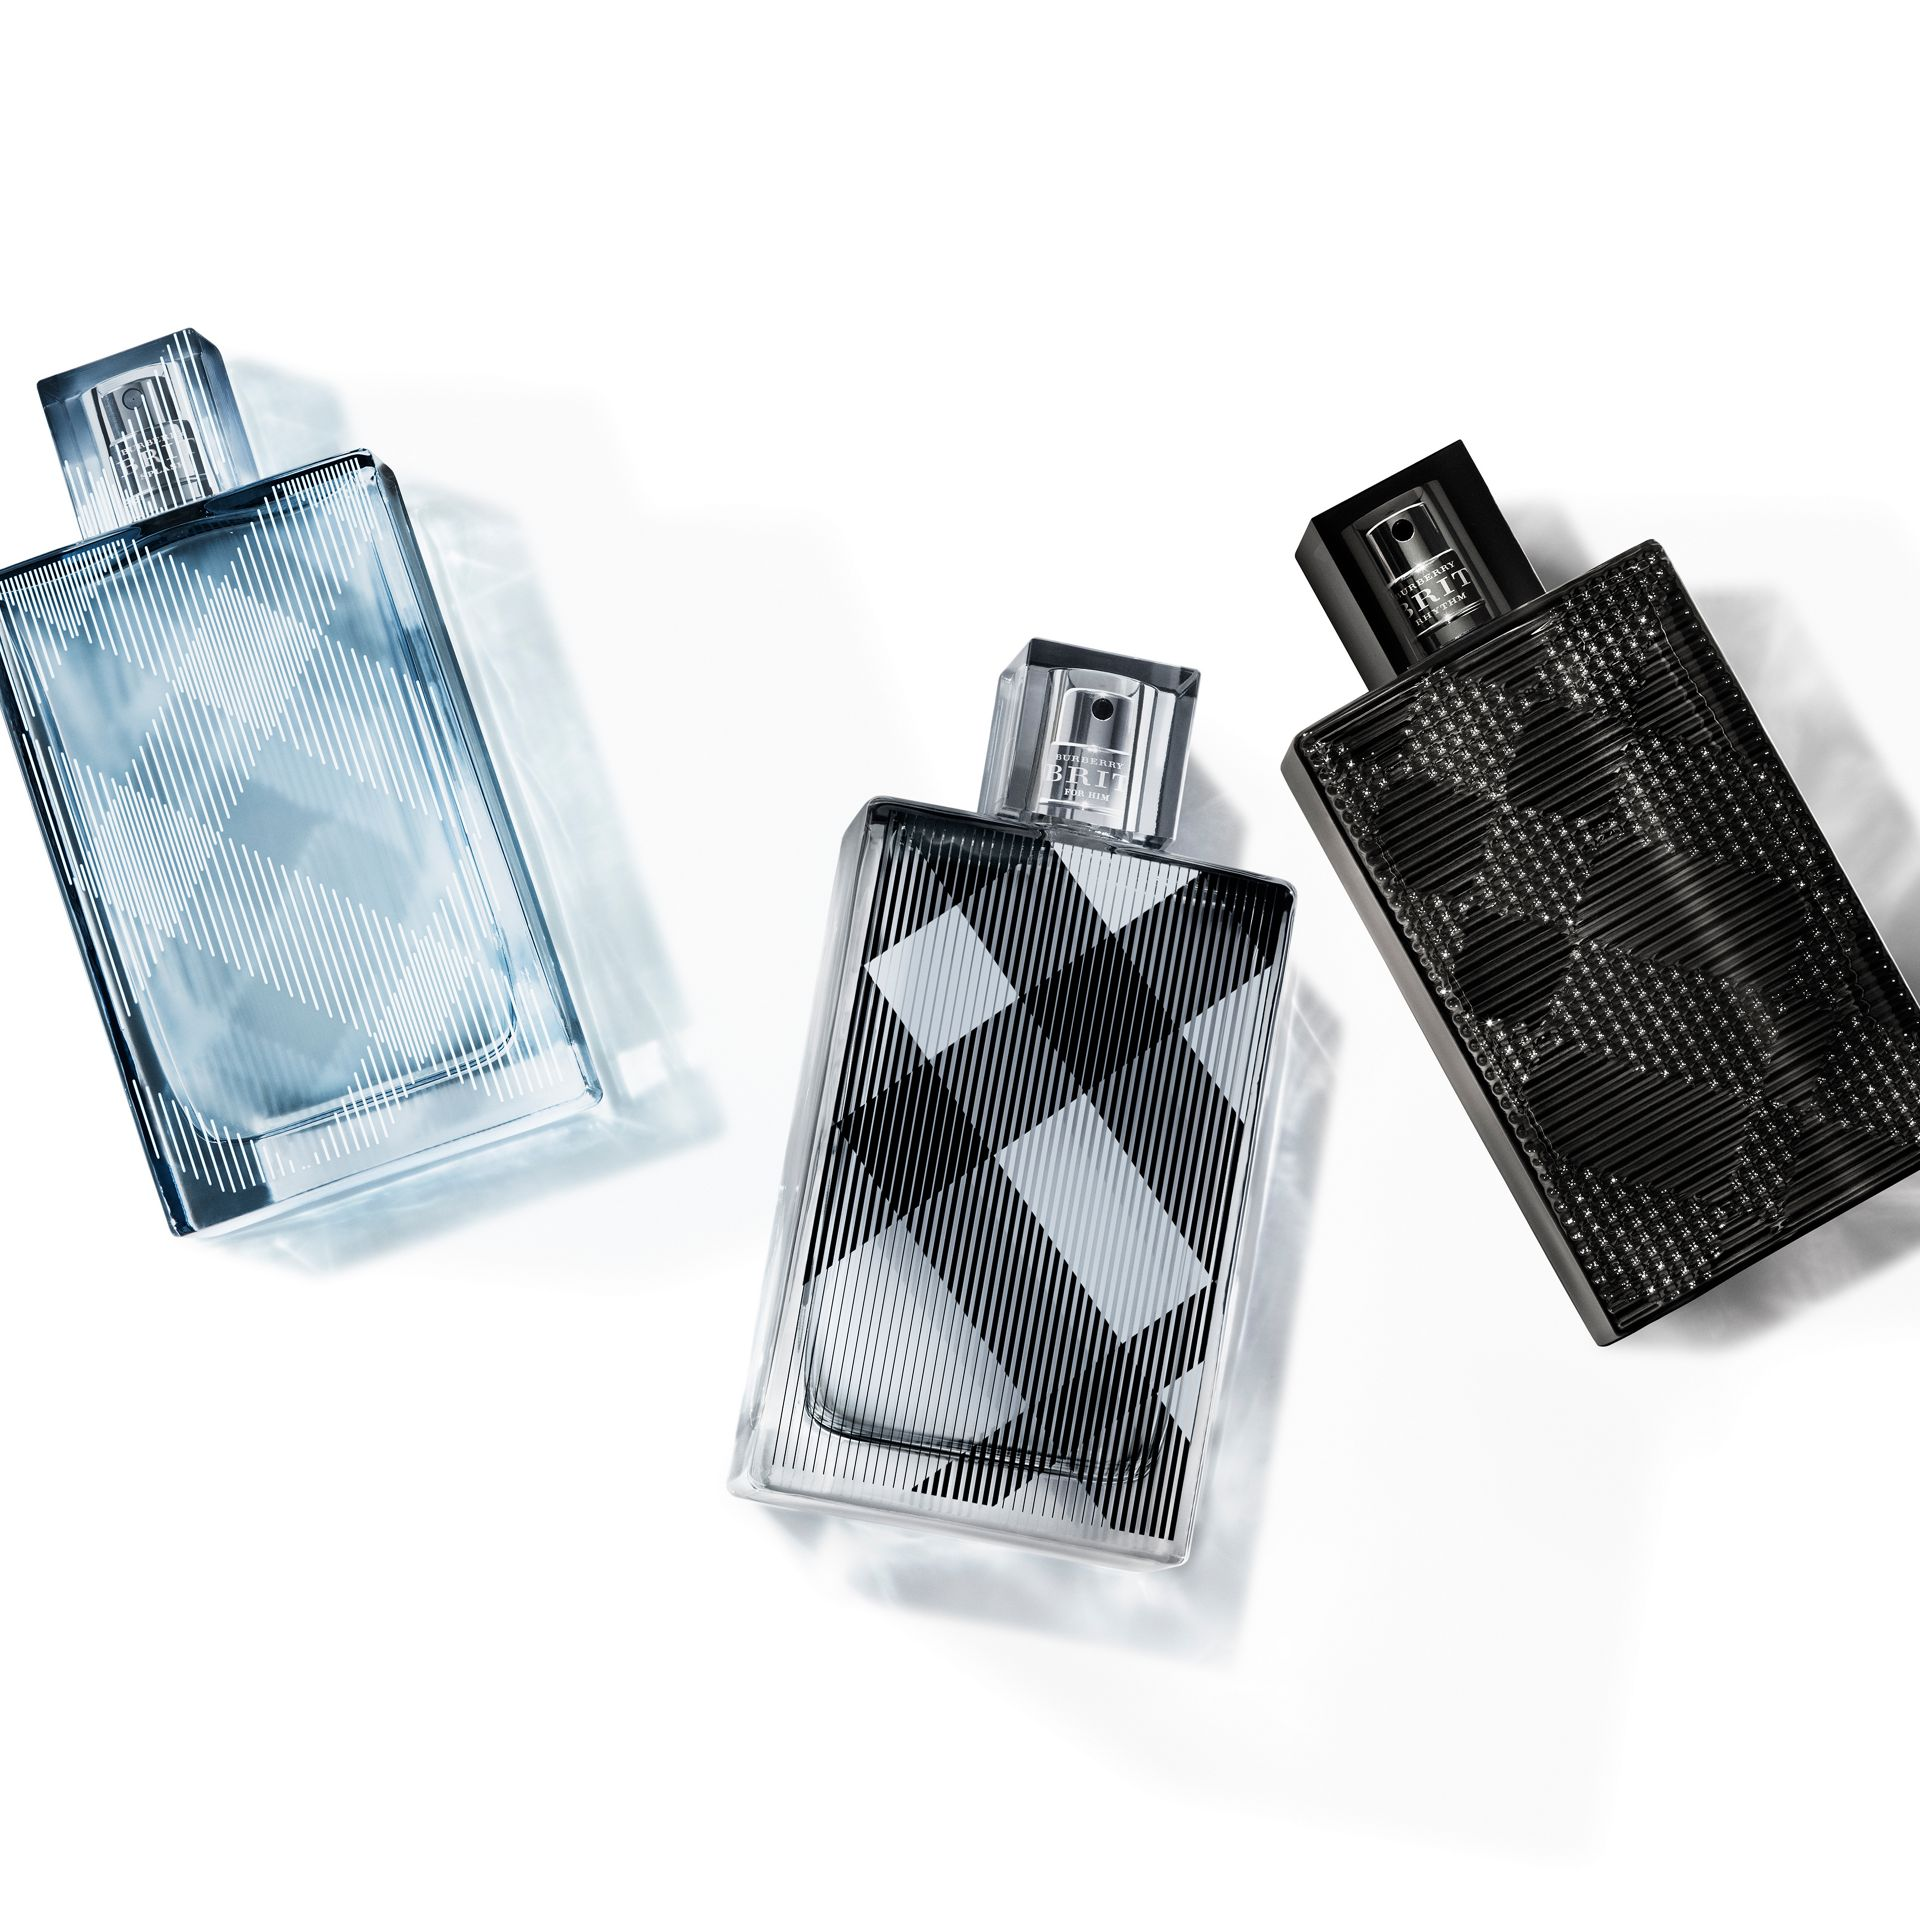 Burberry Brit Rhythm for Him Eau de Toilette Set - gallery image 3